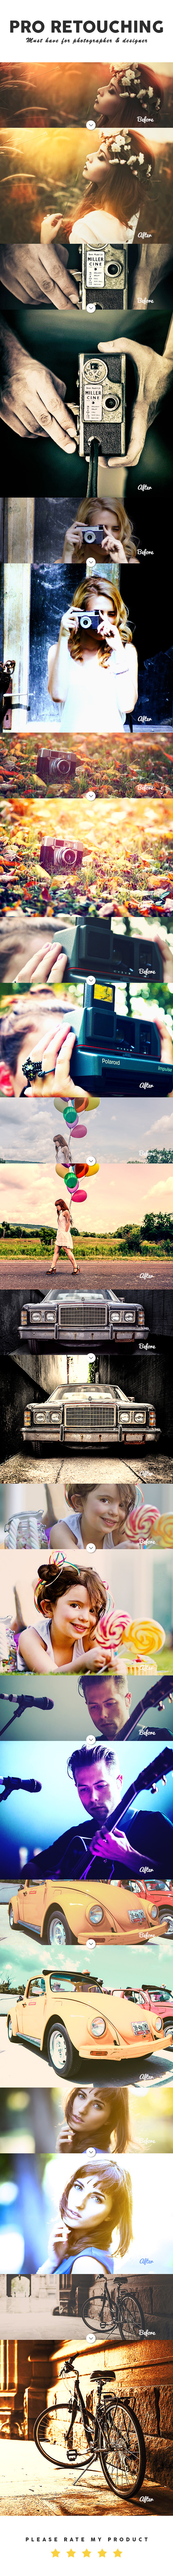 Pro Retouching Photoshop Action  - Photo Effects Actions